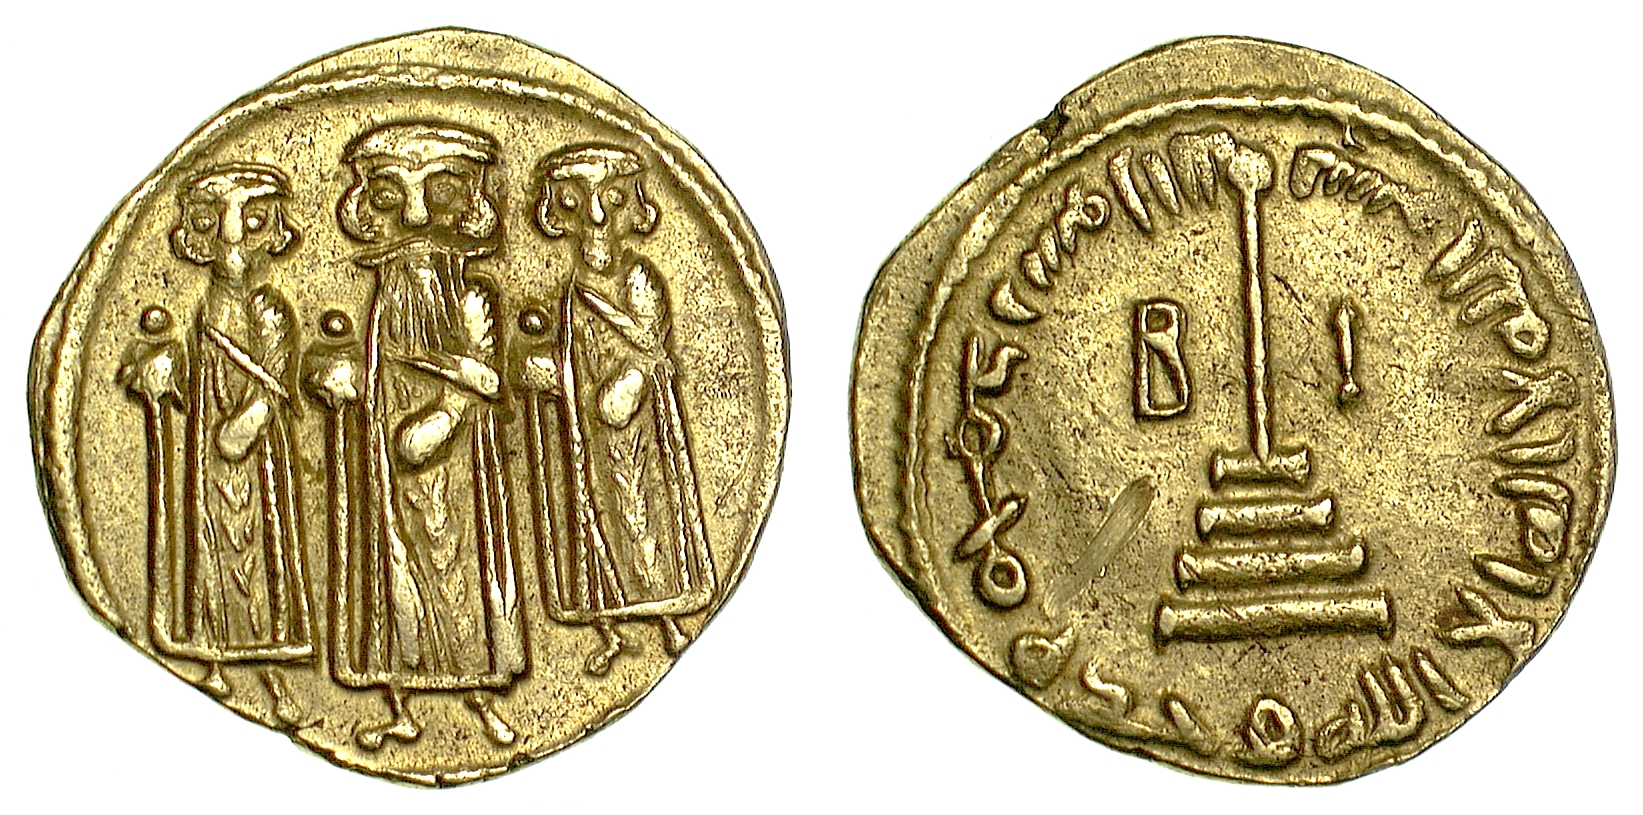 Adaptable Ancient Byzantine Heraclius 12 Nummi Coin 7th Century Ad Coins & Paper Money Byzantine (300-1400 Ad)